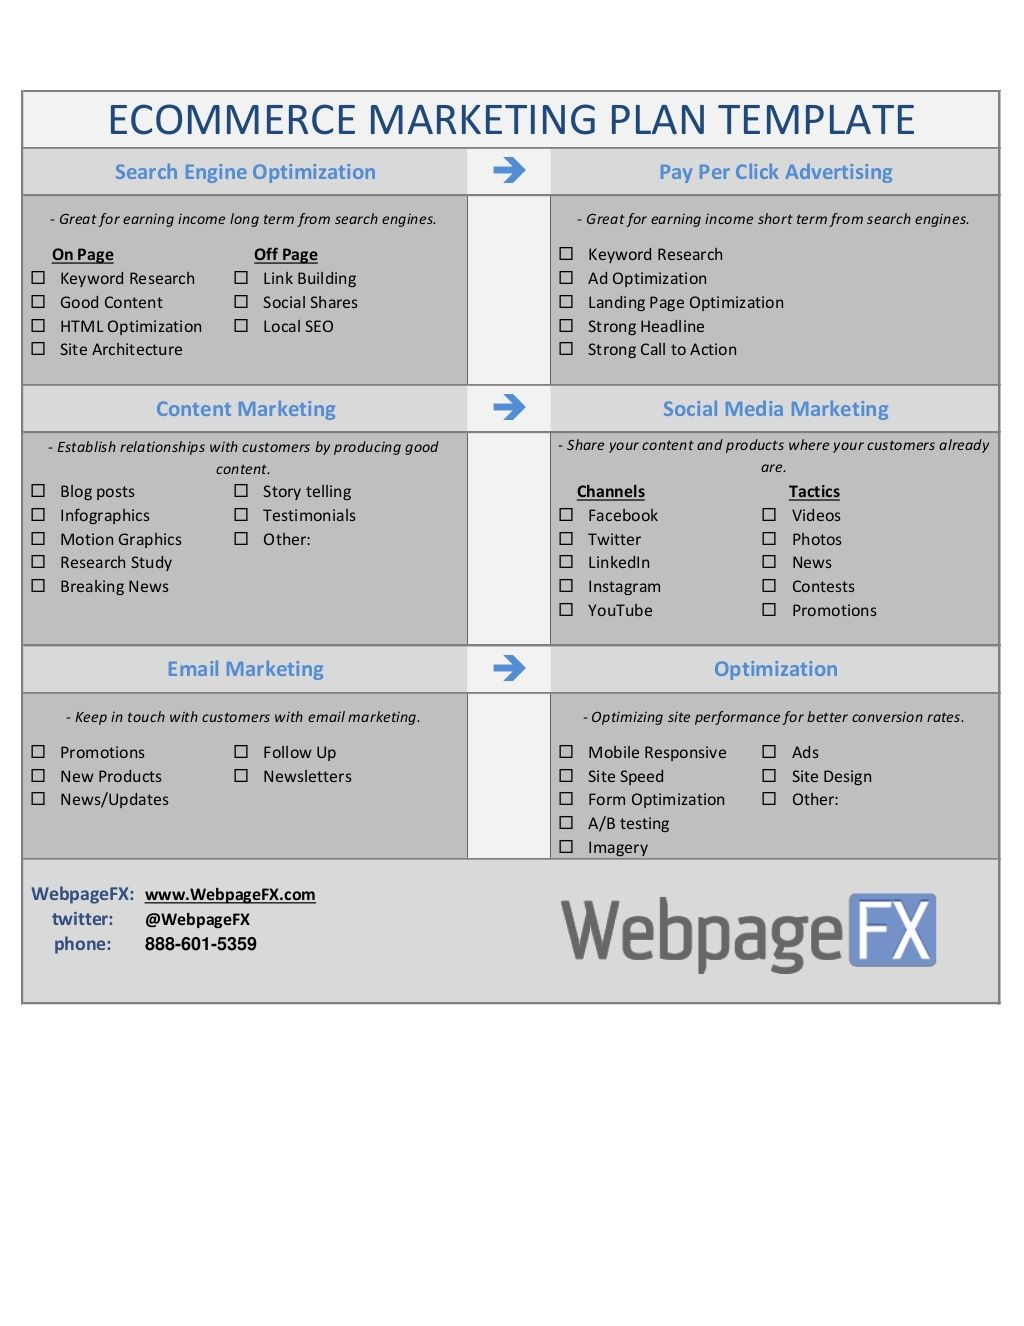 Ecommerce Marketing Plan Template Search Engine Optimization